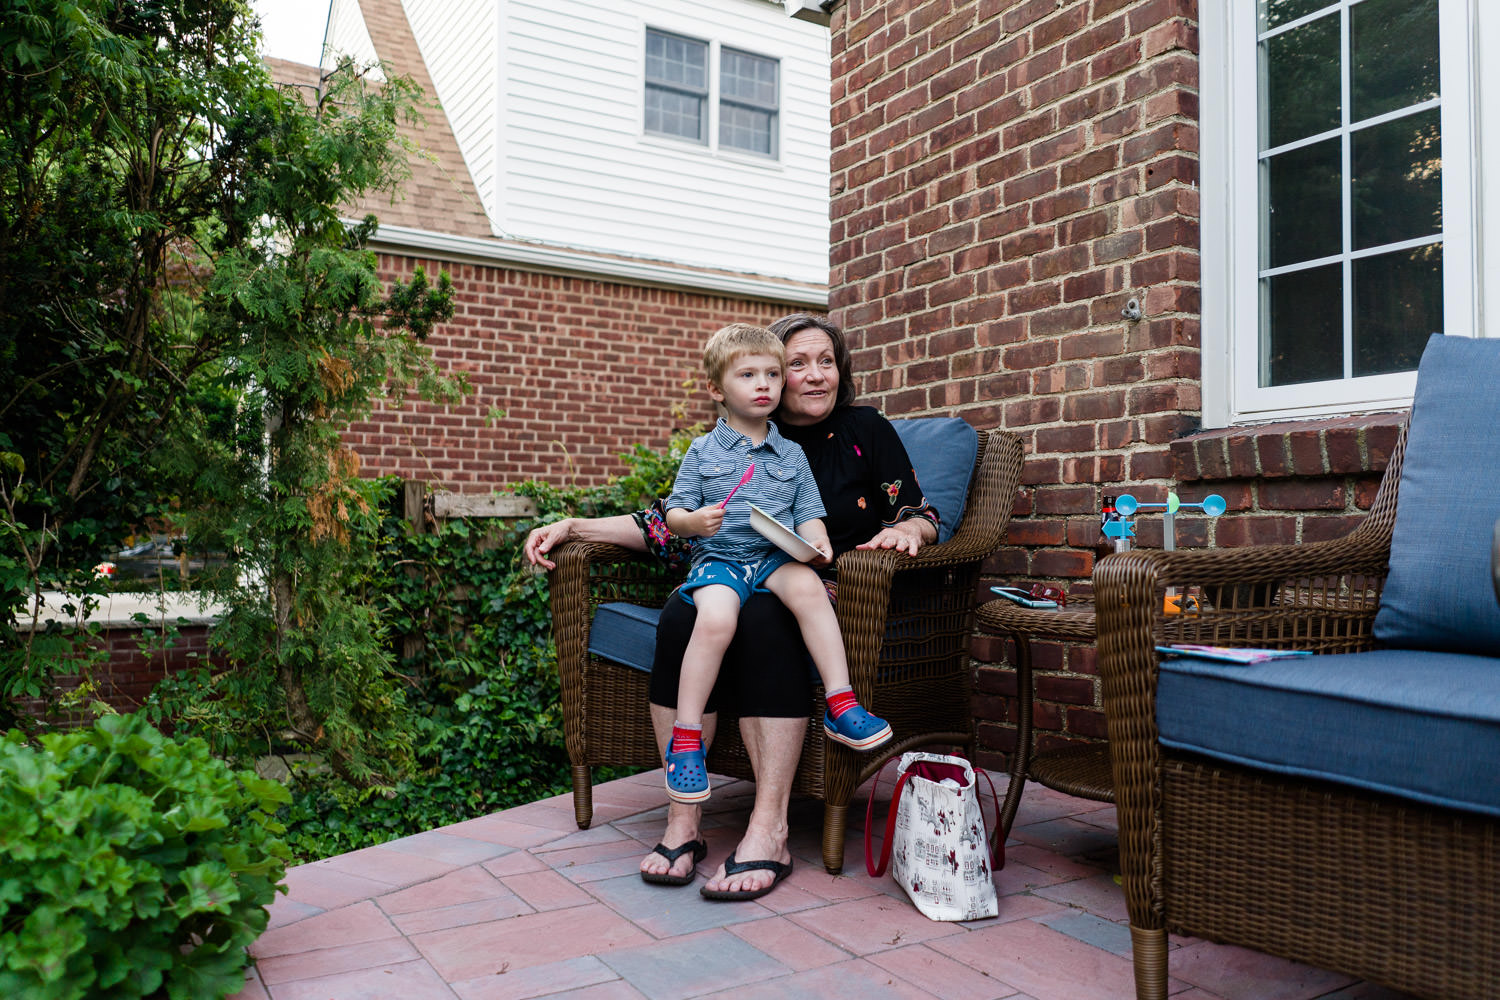 A little boy sits on his grandmother's lap on a front porch.